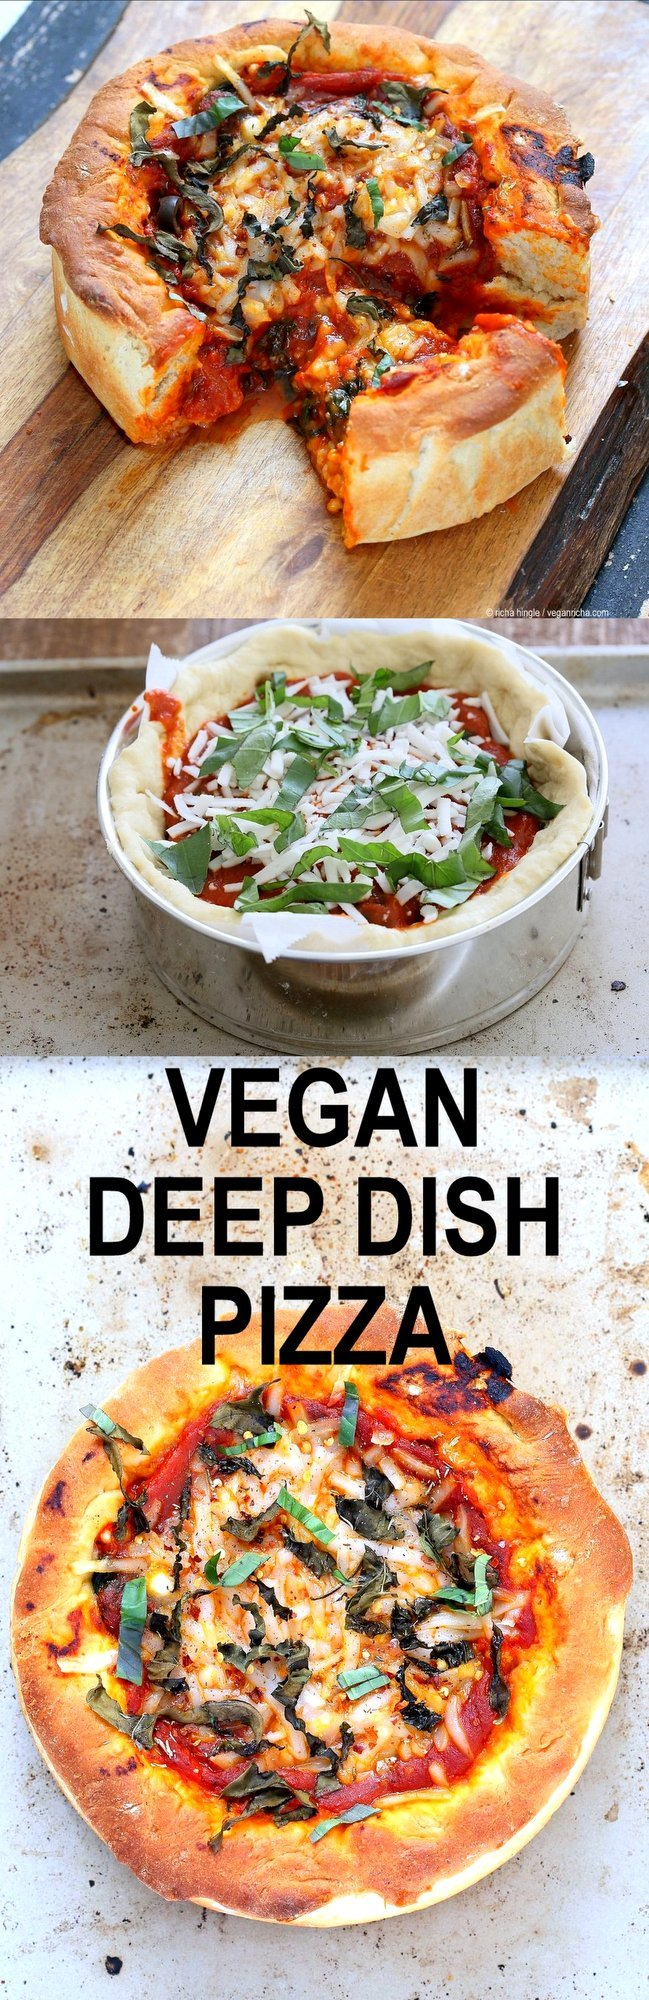 Vegan Deep Dish Pizza Recipe. Easy Deep Dish Pizza with from scratch crust, red pepper, spinach, vegan mozzarella and basil. Vegan Pizza Recipe with homemade 20 Minute Deep Dish Pizza Crust, almost no knead   VeganRicha.com